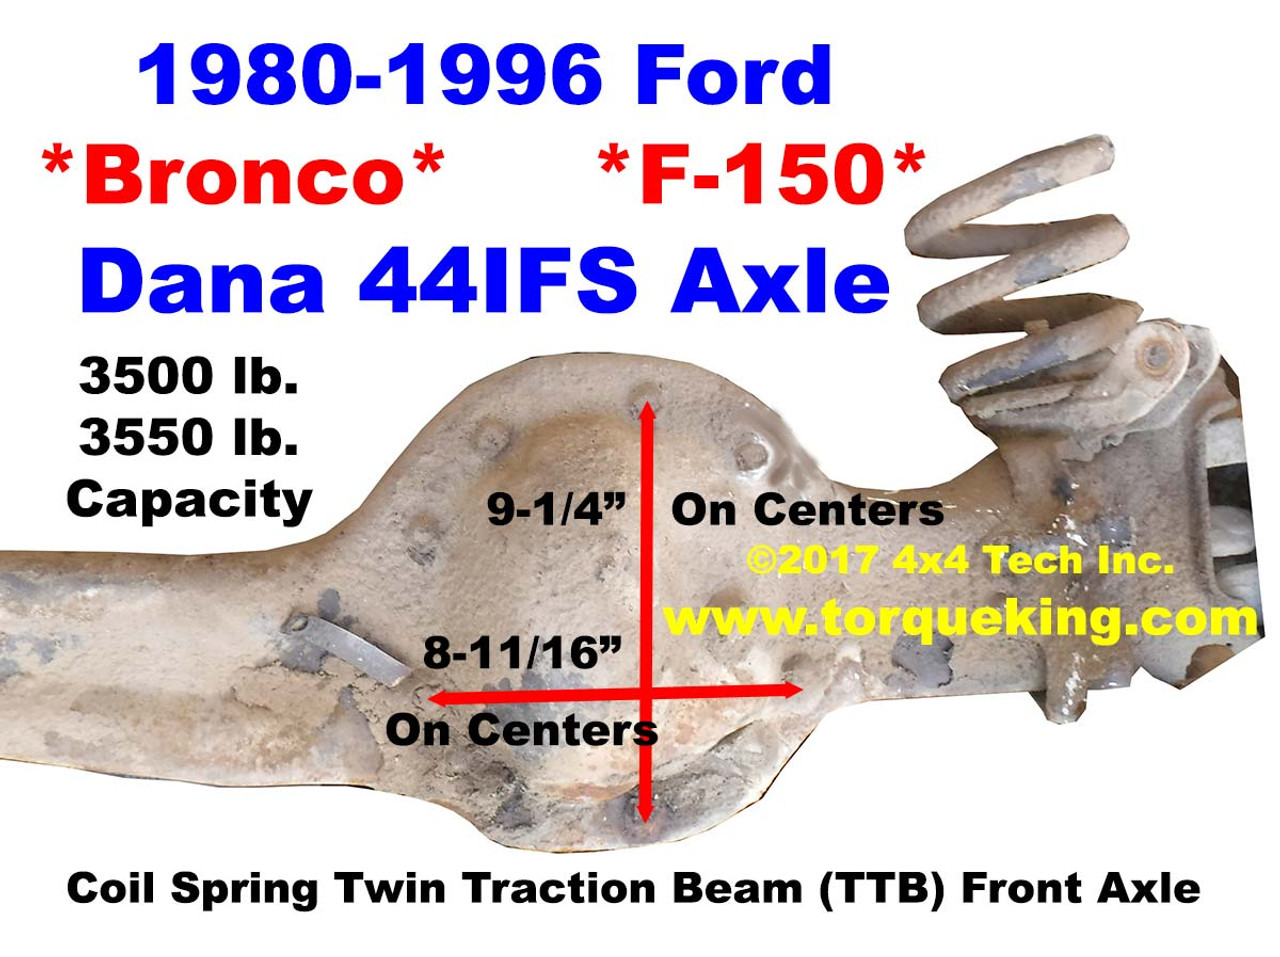 Dana 44ifs Axle Identification For 1980 1996 Ford Bronco F150 Truck Brush Guards And Twin Traction Beam Front